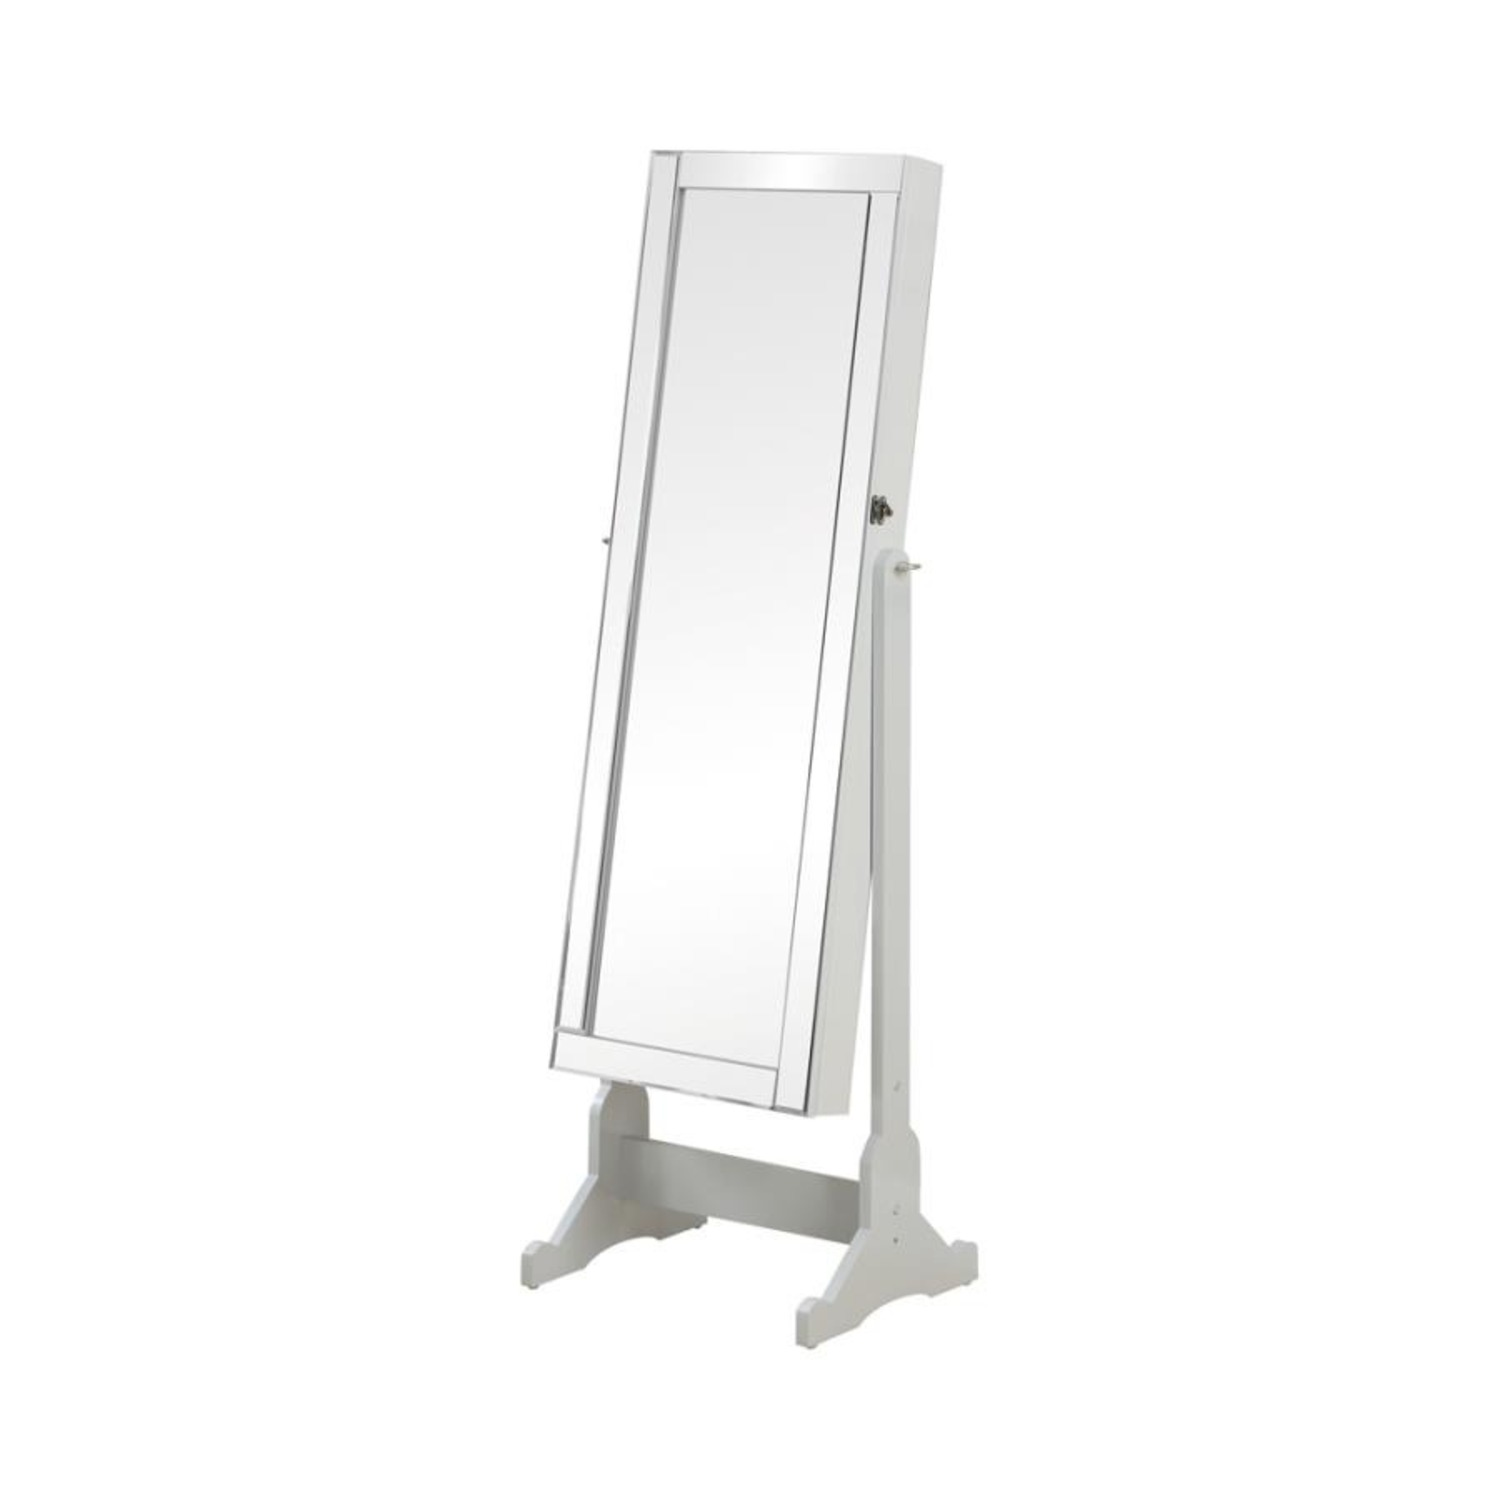 Tilting Jewelry Mirror In Dove Grey Finish - image-0